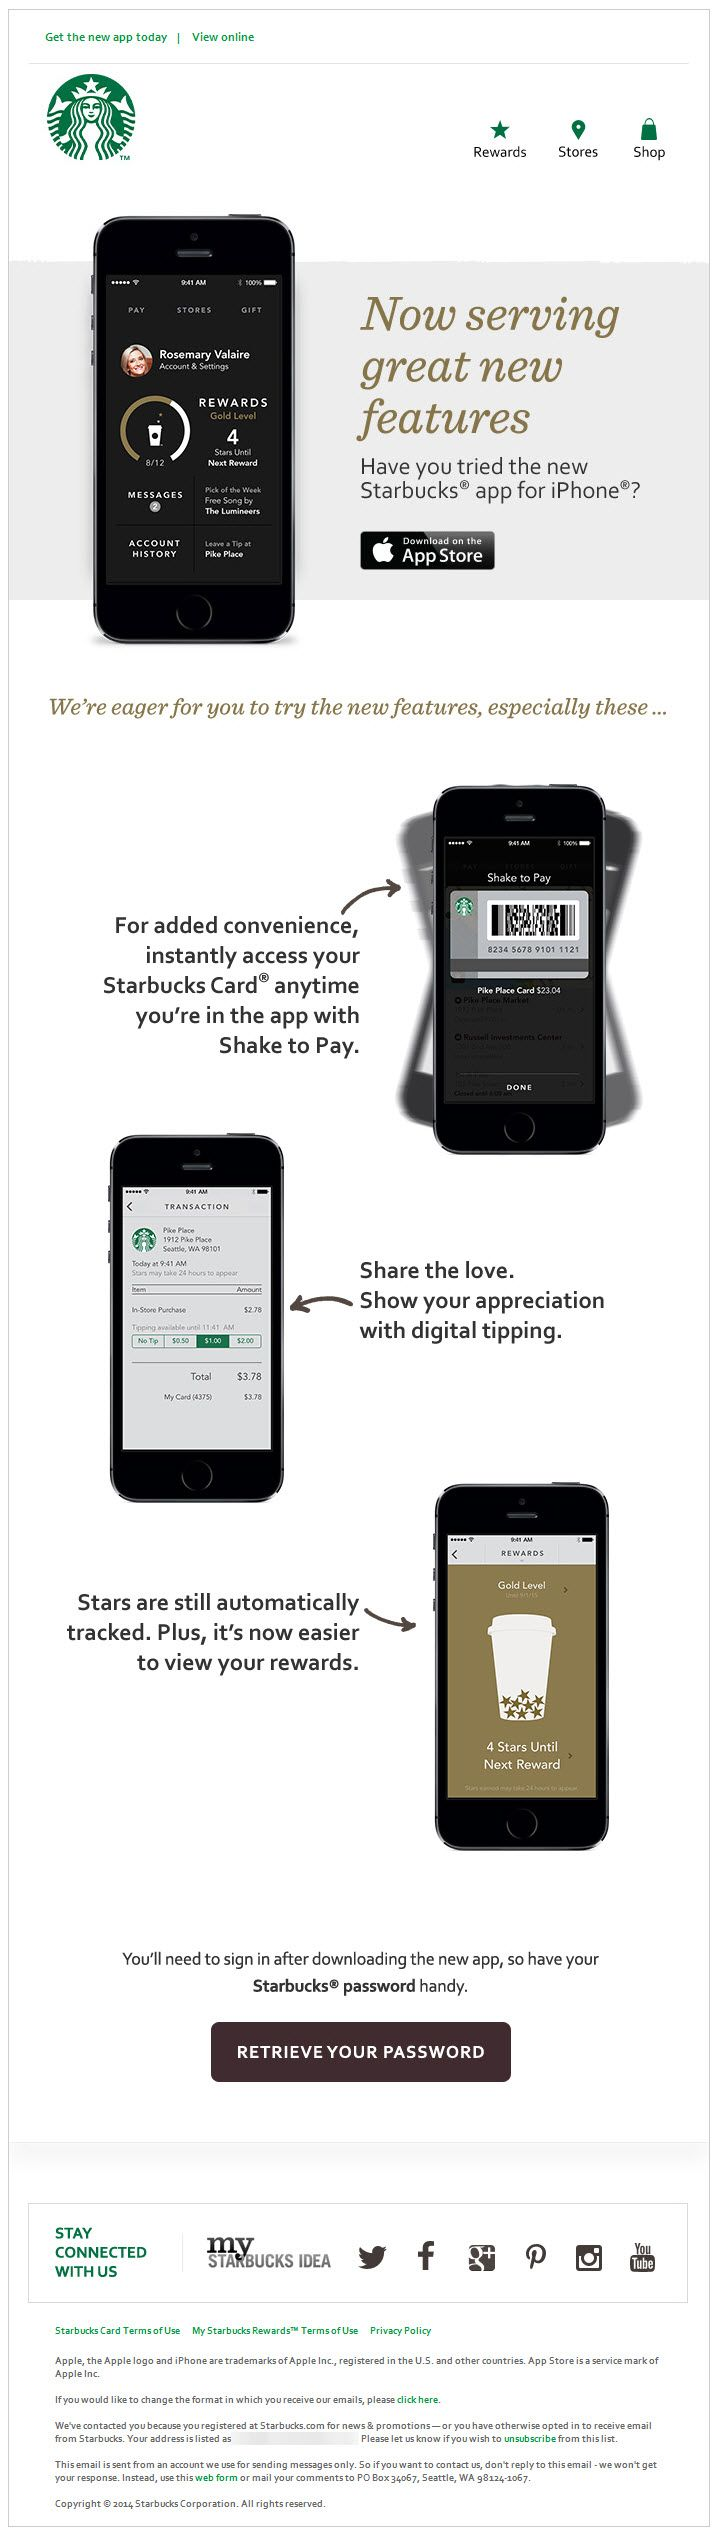 """Starbucks >> sent 3/21/14 >> The new Starbucks app for iPhone is ready to download >> This is a great app update announcement, complete with feature highlights and a relevant """"Retrieve Your Password"""" call-to-action. And, of course, because this email targ"""